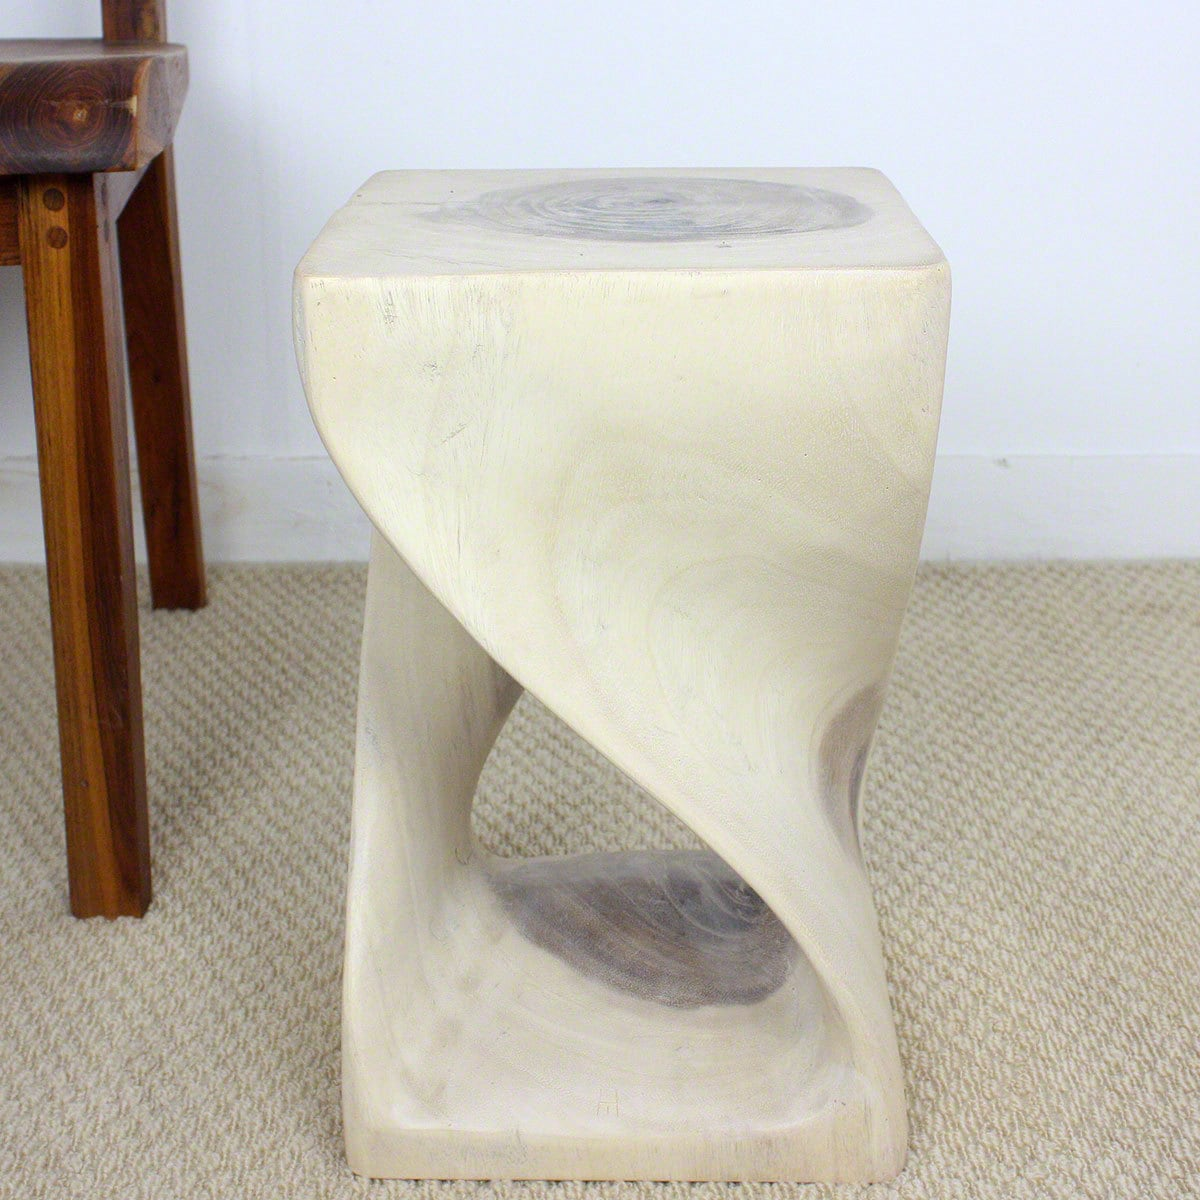 10 inches square x 16 inch monkey pod wood 16 inch white for Coffee tables 16 inches high